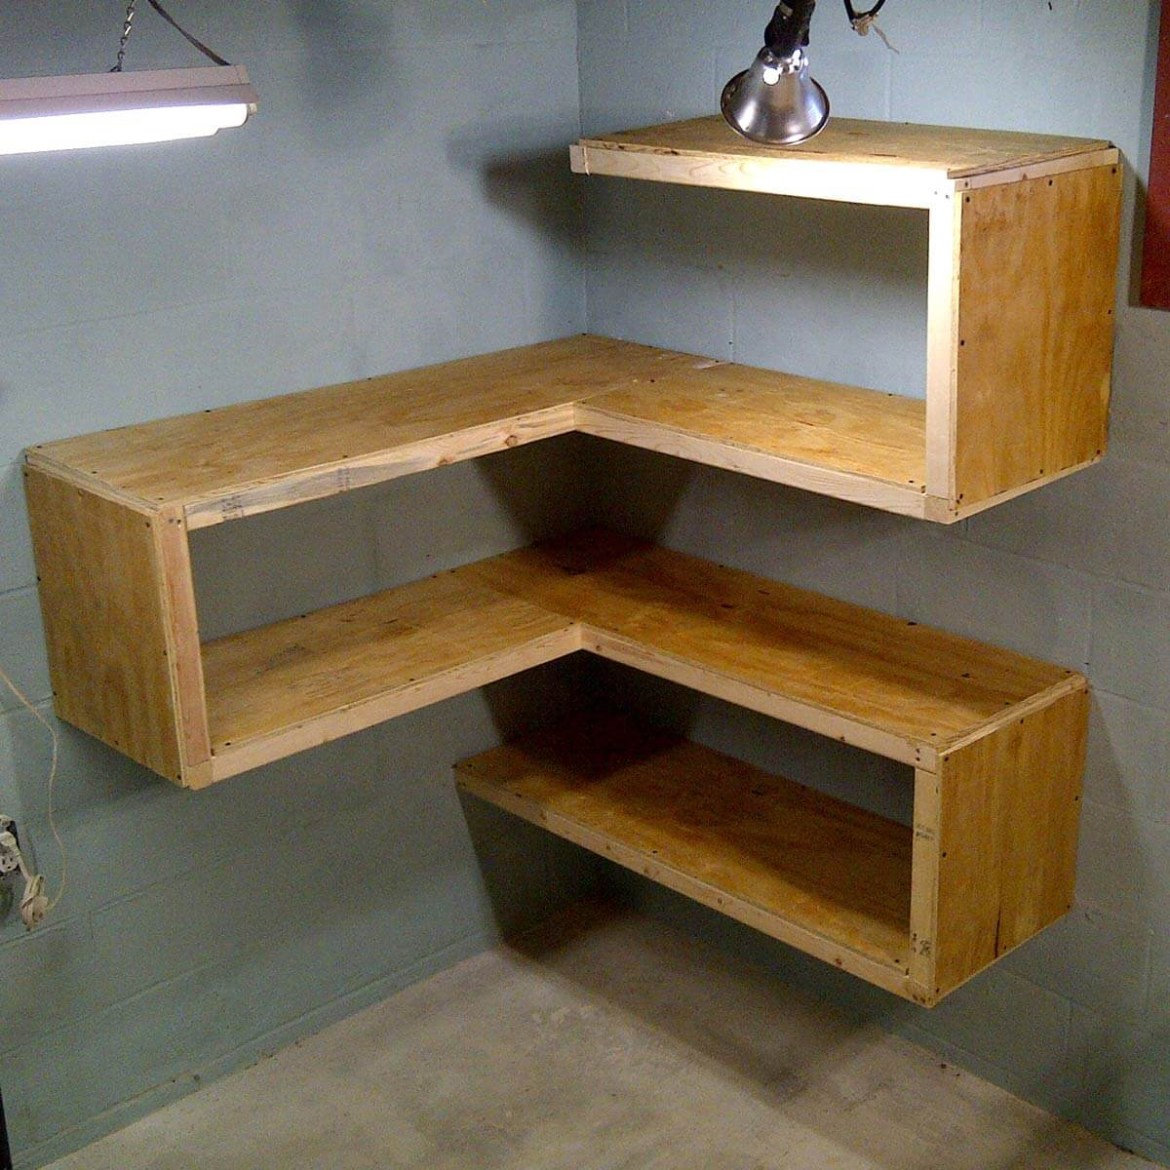 An awesome plywood furniture with flowing lines and interesting curves at the corner for bookshelves and storage